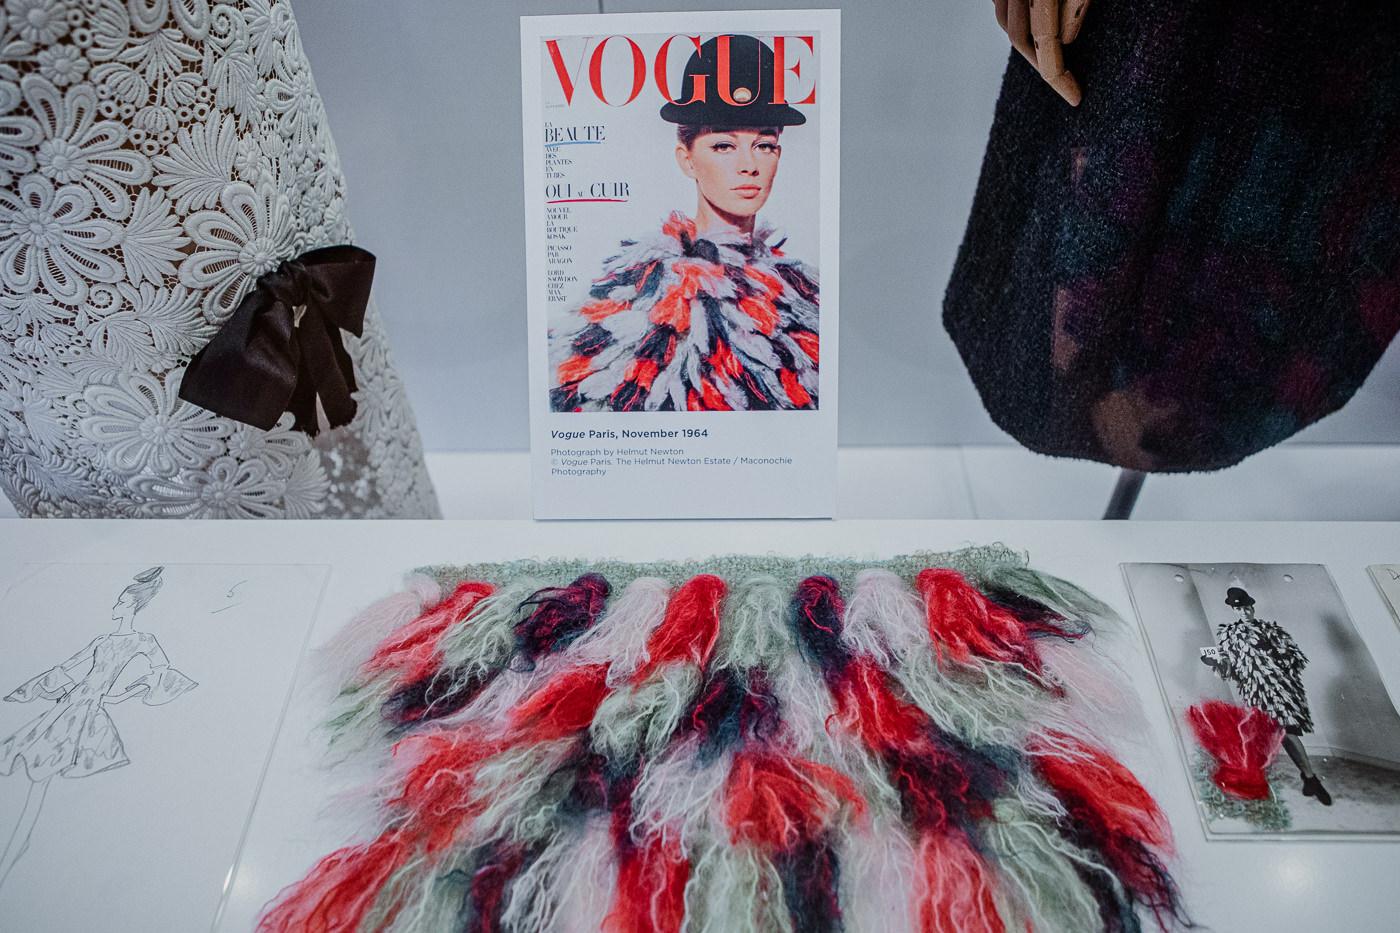 vogue featuring balenciaga - luxury fashion